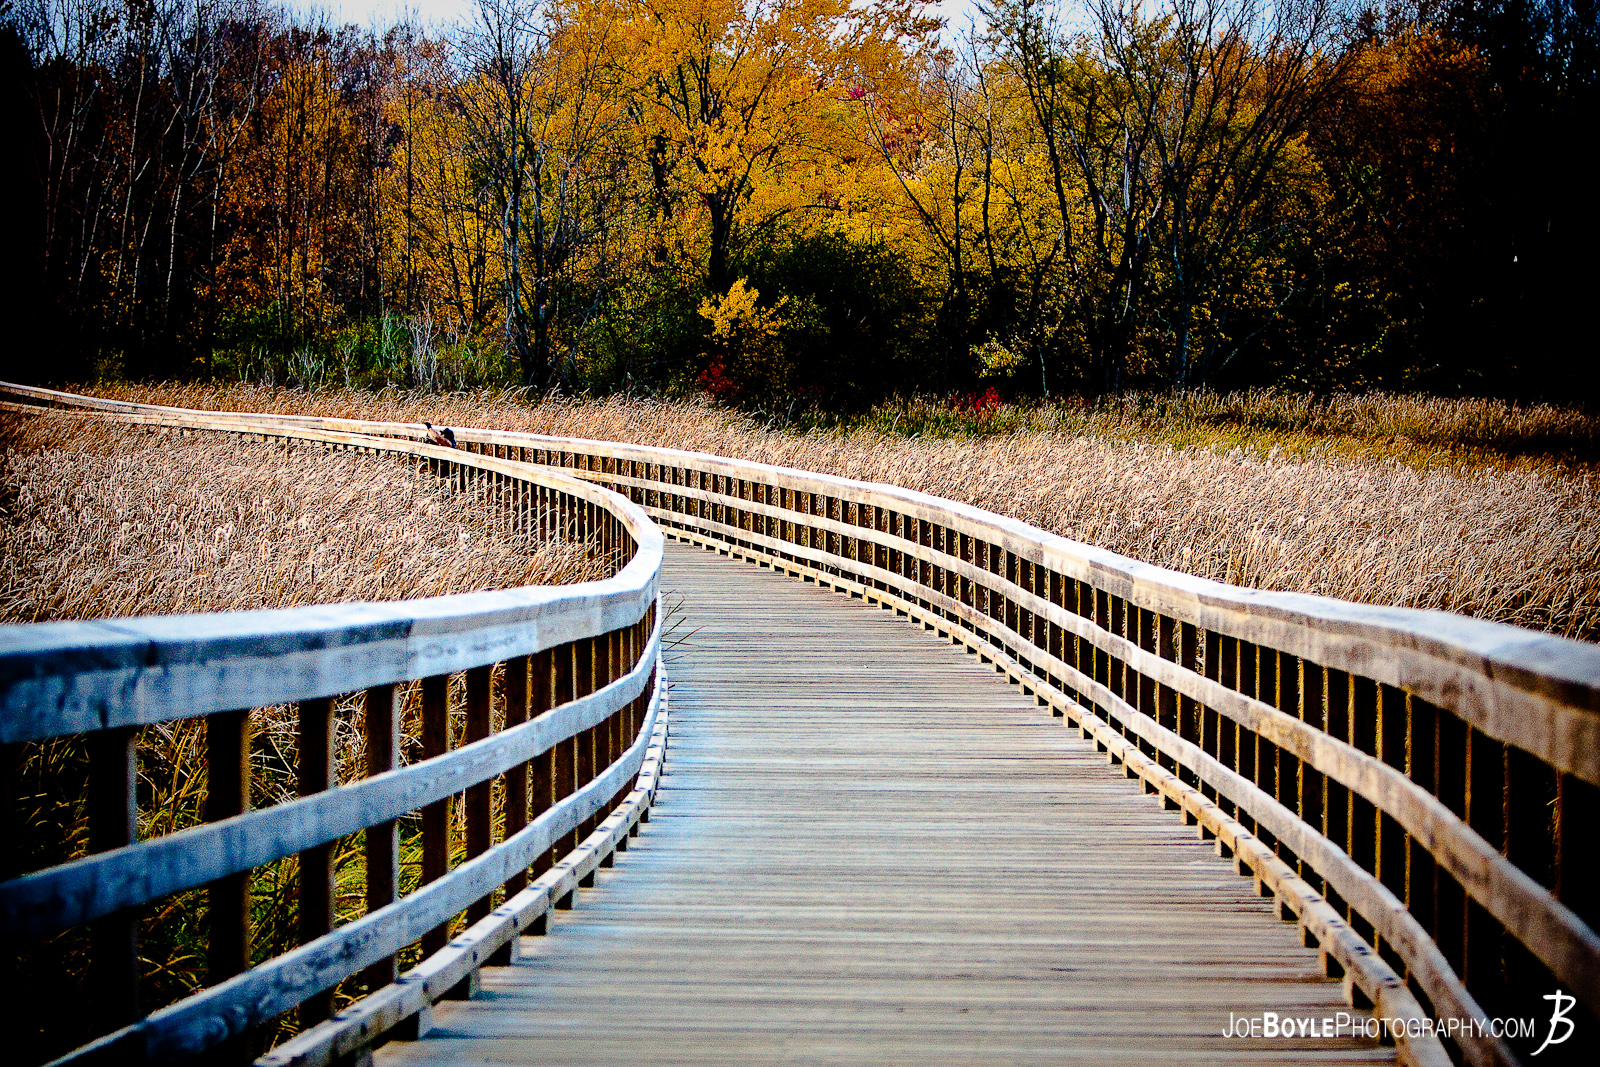 I was on a short hike with a few friends when I took this picture. I really loved the curving lines of the bridge (or walkway) throughout the field and I was lucky that there weren't very many people on it!